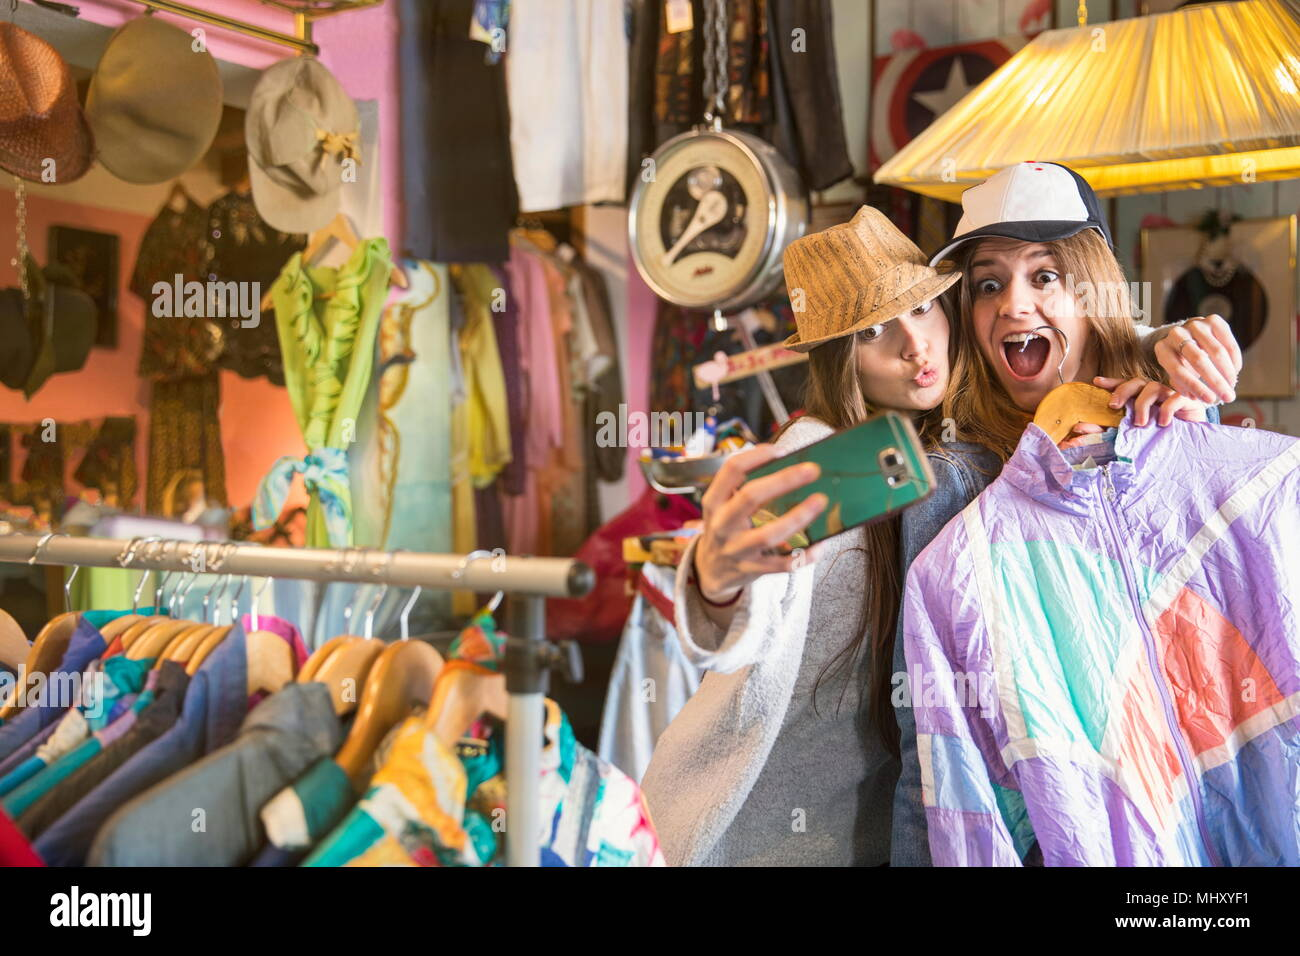 Friends taking selfie in thrift store - Stock Image